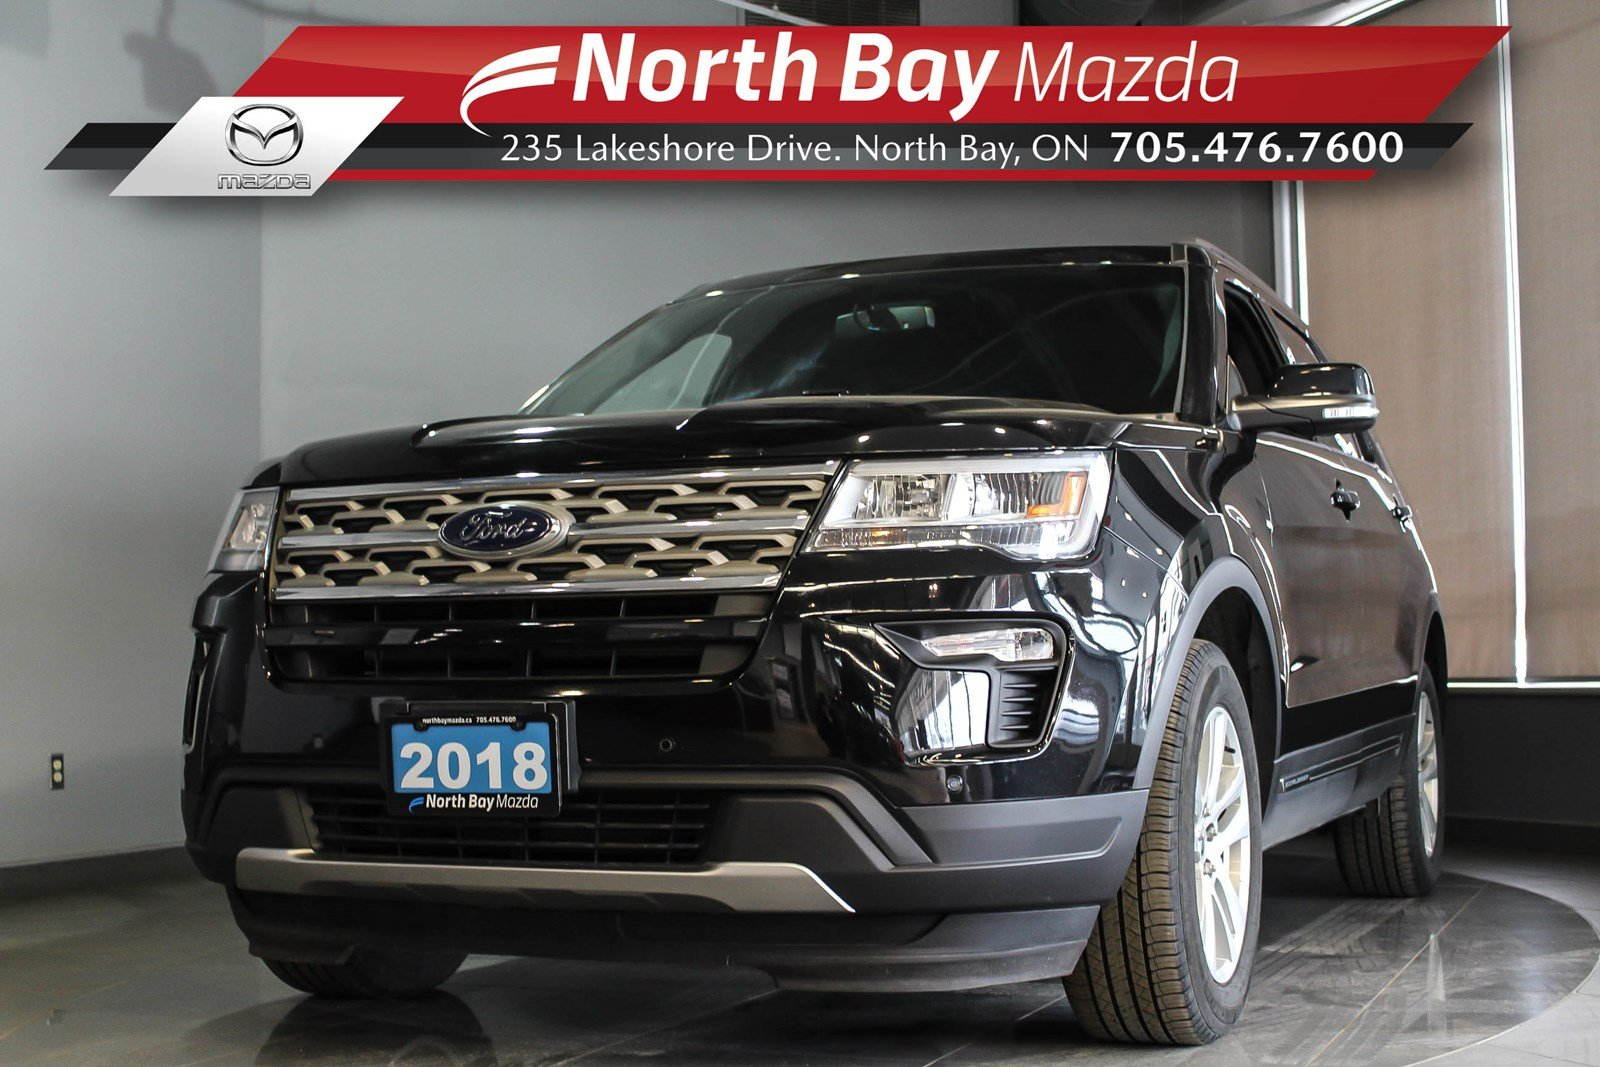 Pre-Owned 2018 Ford Explorer XLT AWD 7 Passenger with Heated Seats, Bluetooth, Cruise